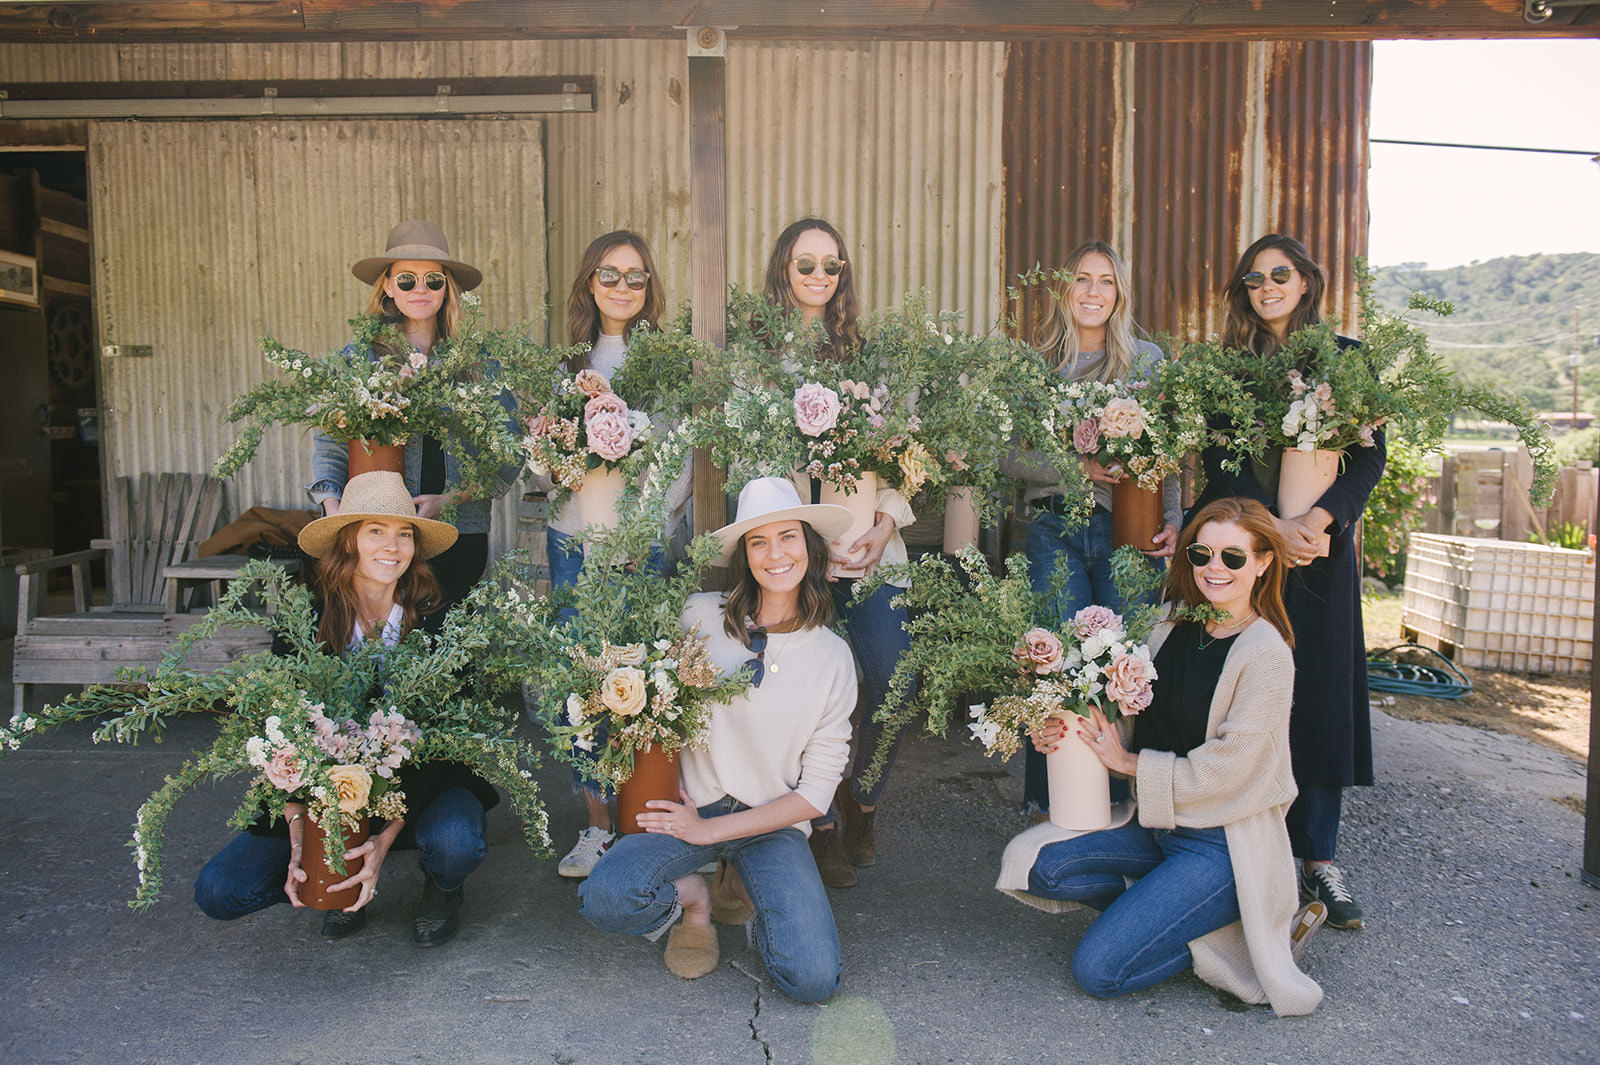 Floral arranging class with Sarah Winward at Folded Hills Ranch for Pacific Natural with Jenni Kayne!